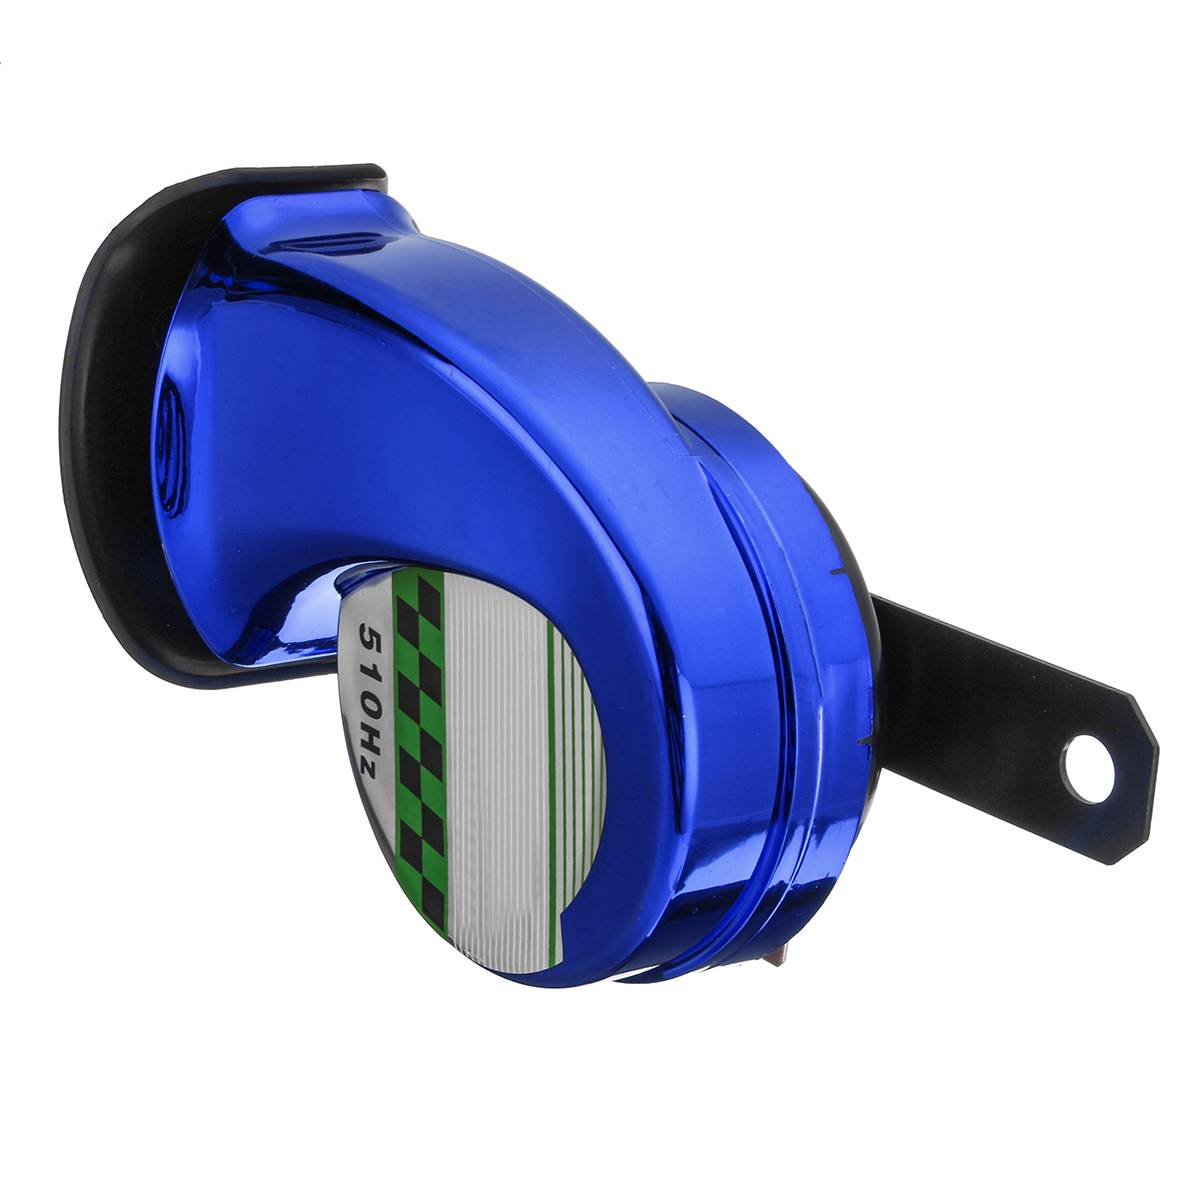 Image 4 - Universal 12V DC 130db Snail Air Motorcycle Horn Siren Loud for Car Truck Motorbike Waterproof-in Multi-tone & Claxon Horns from Automobiles & Motorcycles